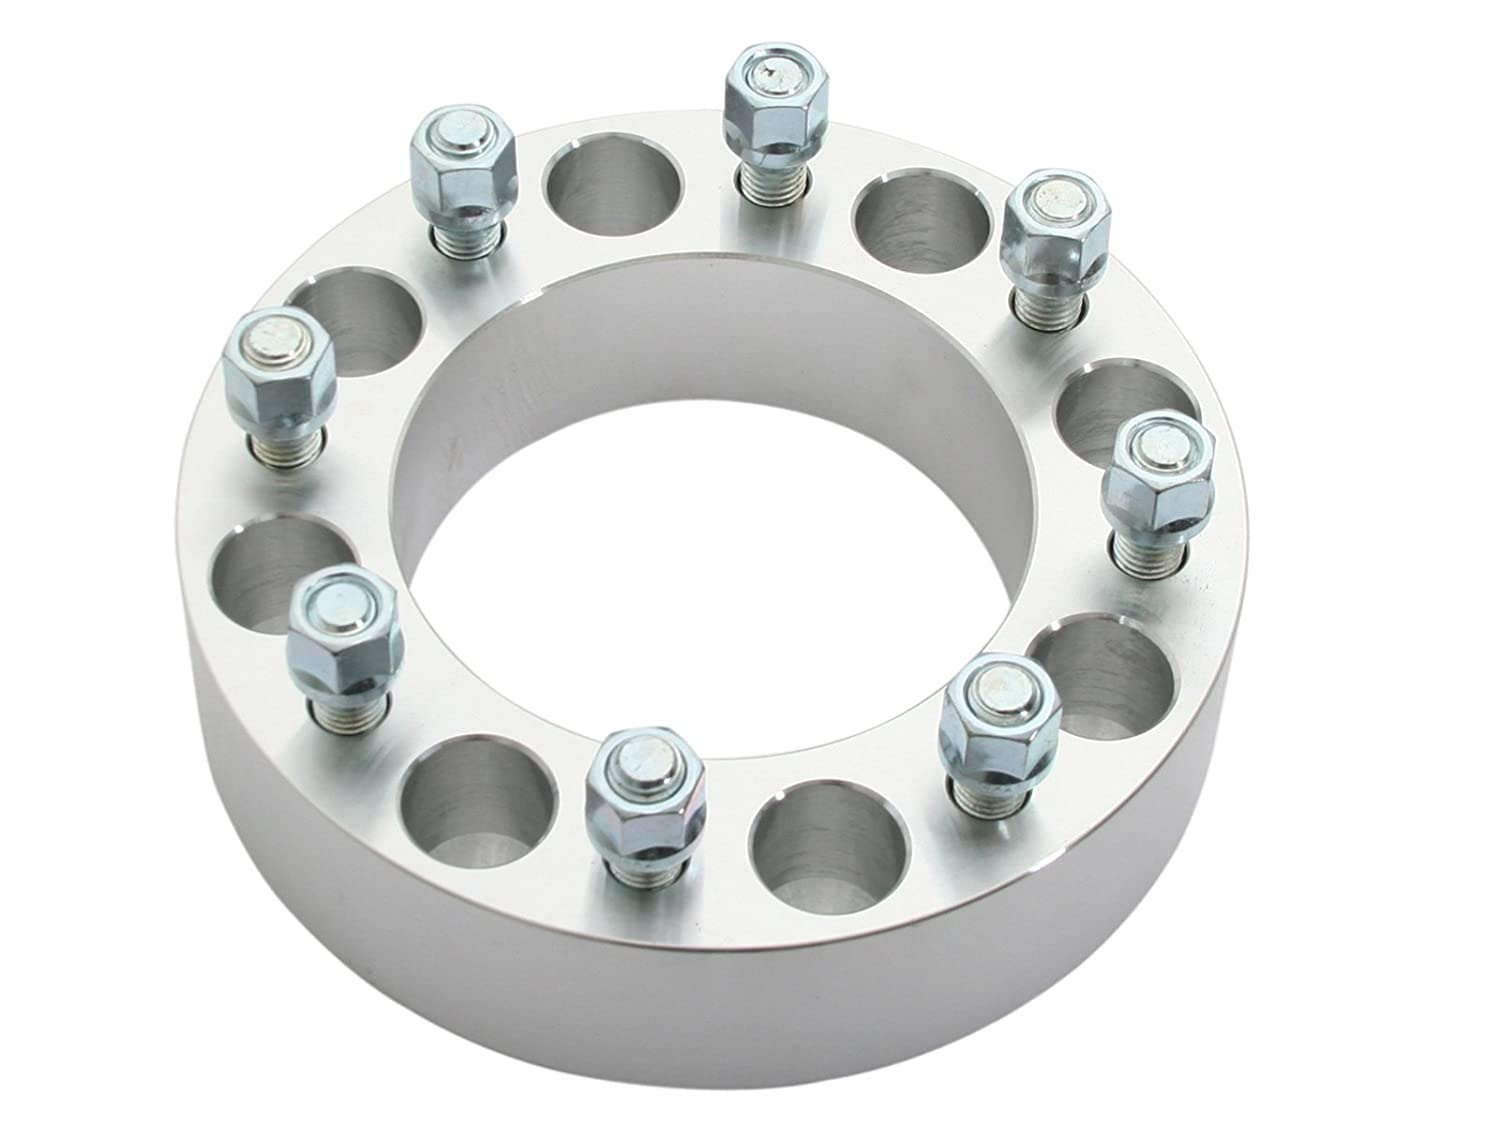 All Chevy chevy 1500 bolt pattern : Amazon.com: 2pc 2